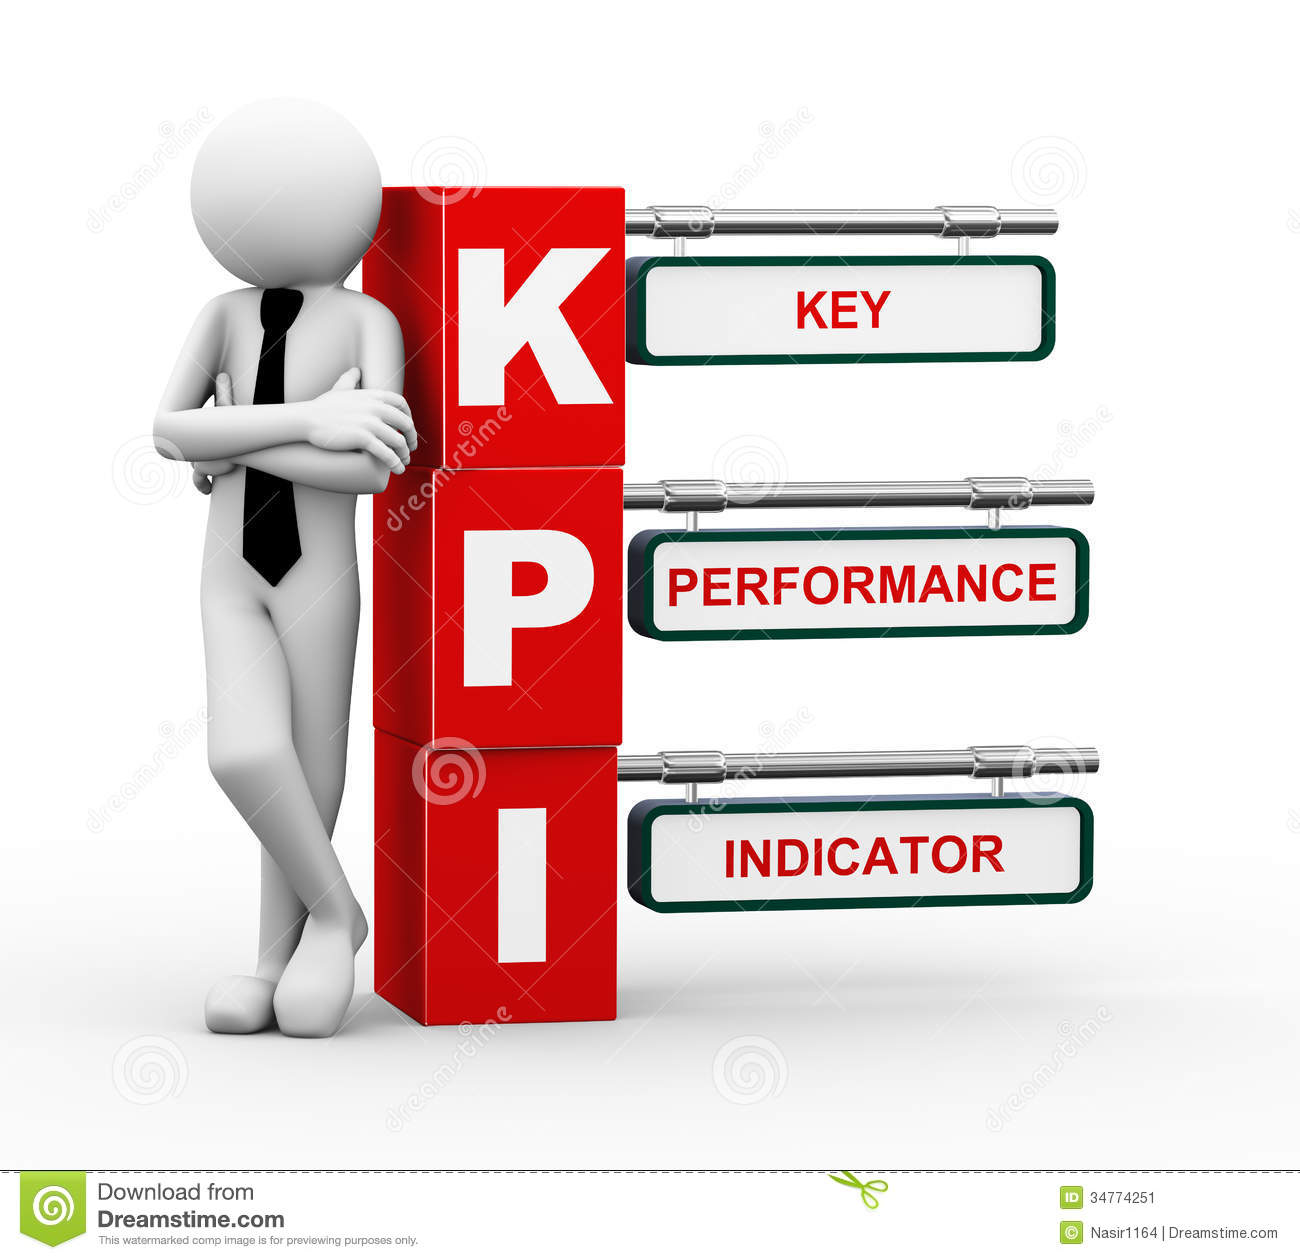 d-businessman-kpi-signpost-illustration-rendering-business-person-standing-key-performance-indicator-white-people-man-34774251.jpg